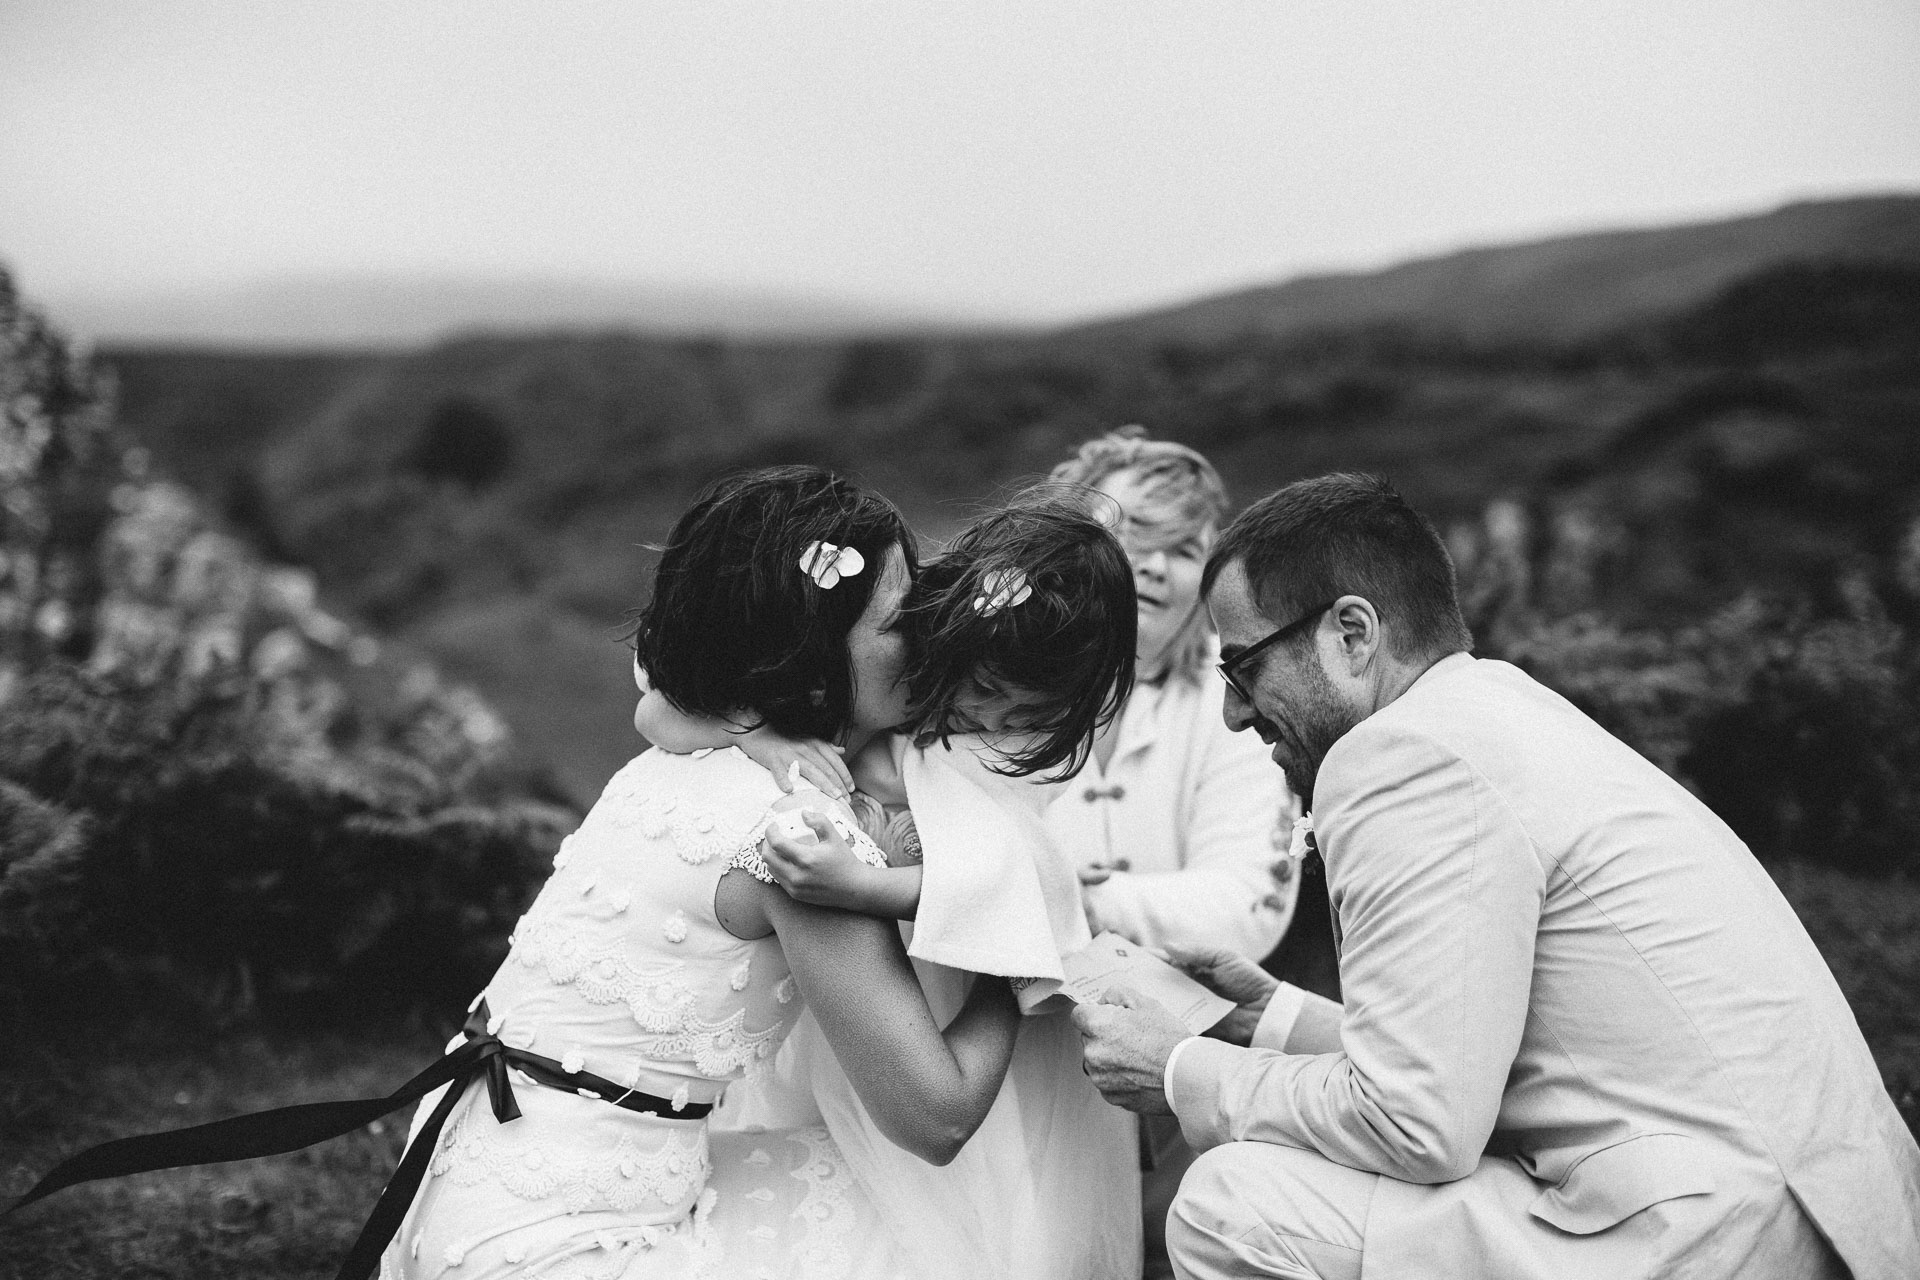 Megan_Matt_Elopement_IntimateWedding_Scotland_IsleOfSkye_JeanLaurentGaudy_085